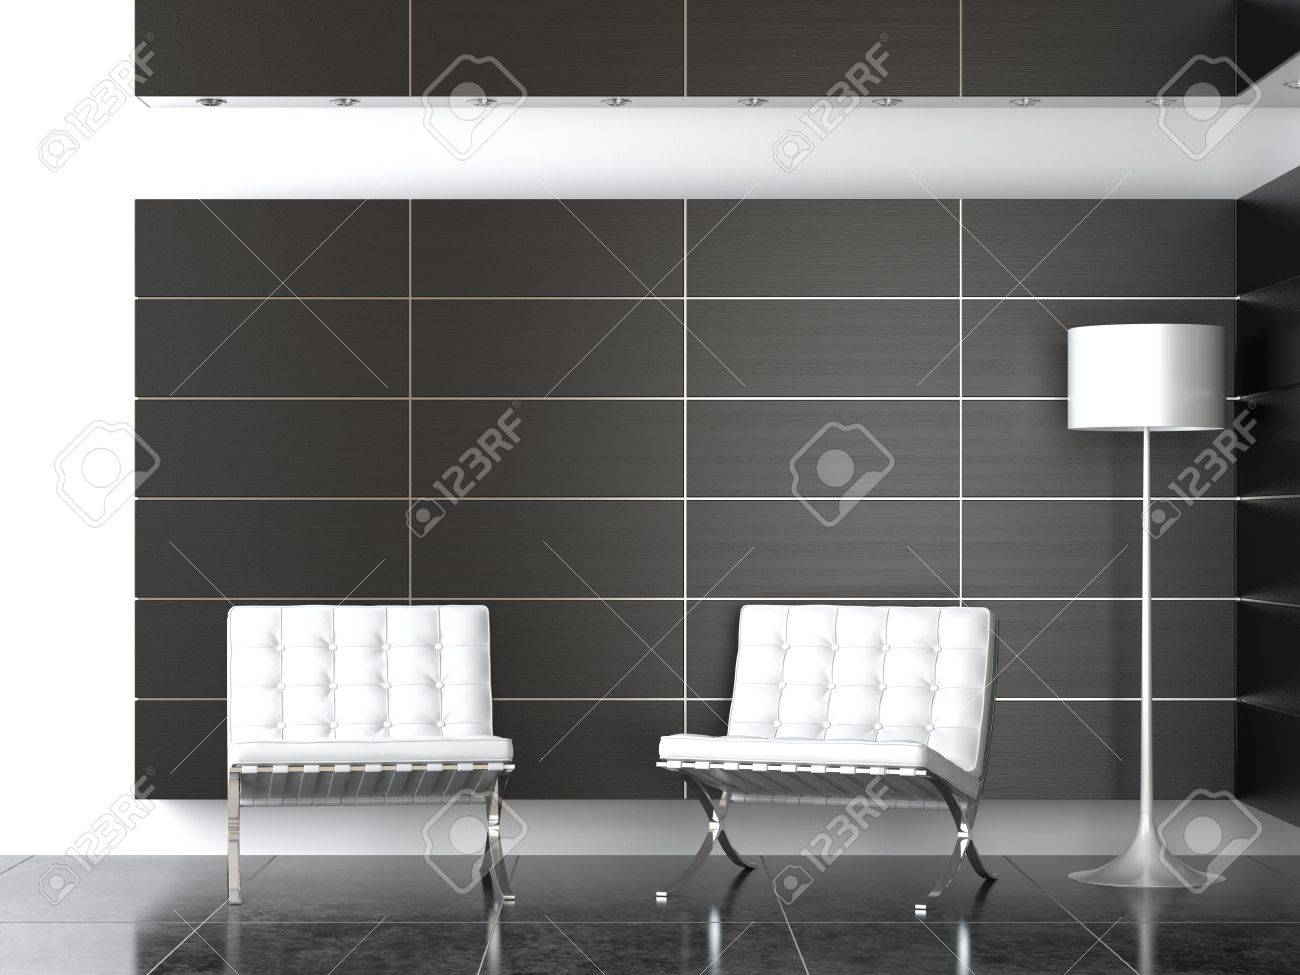 Tremendous Interior Design Of Modern Reception With Two Barcelona Chairs Ibusinesslaw Wood Chair Design Ideas Ibusinesslaworg